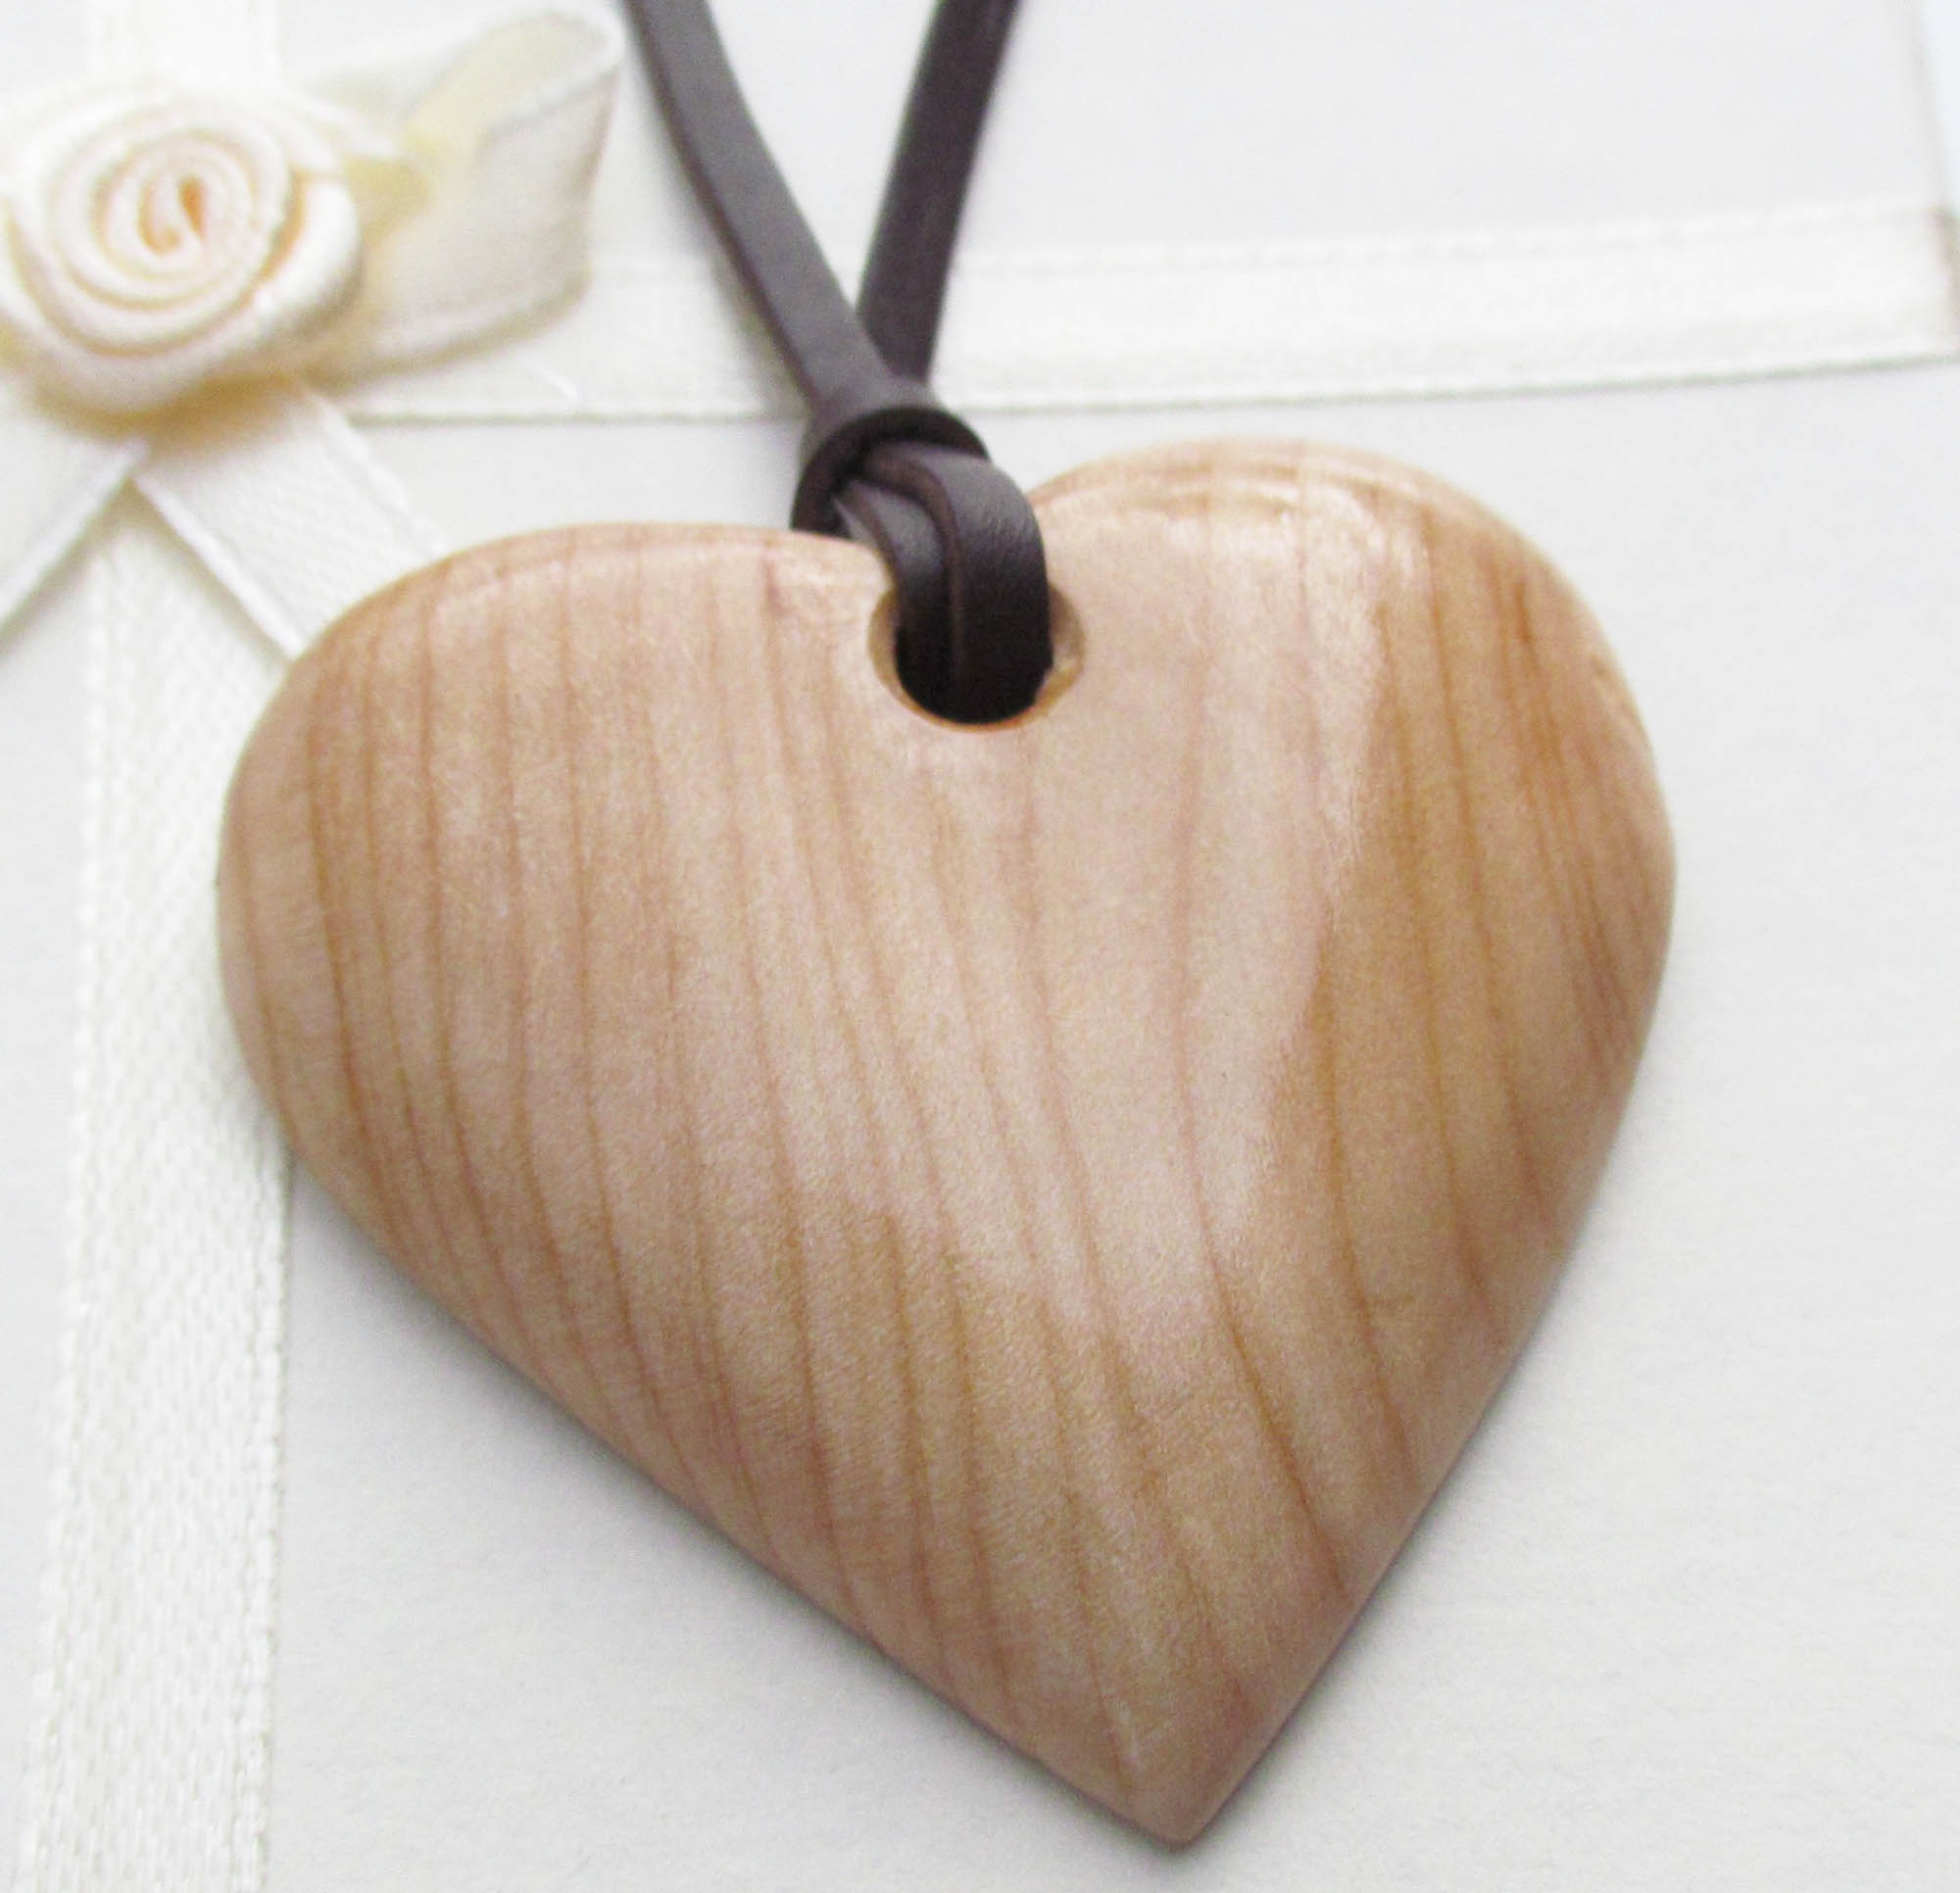 Wild Willow - Handcrafted in our workshop in Scotland